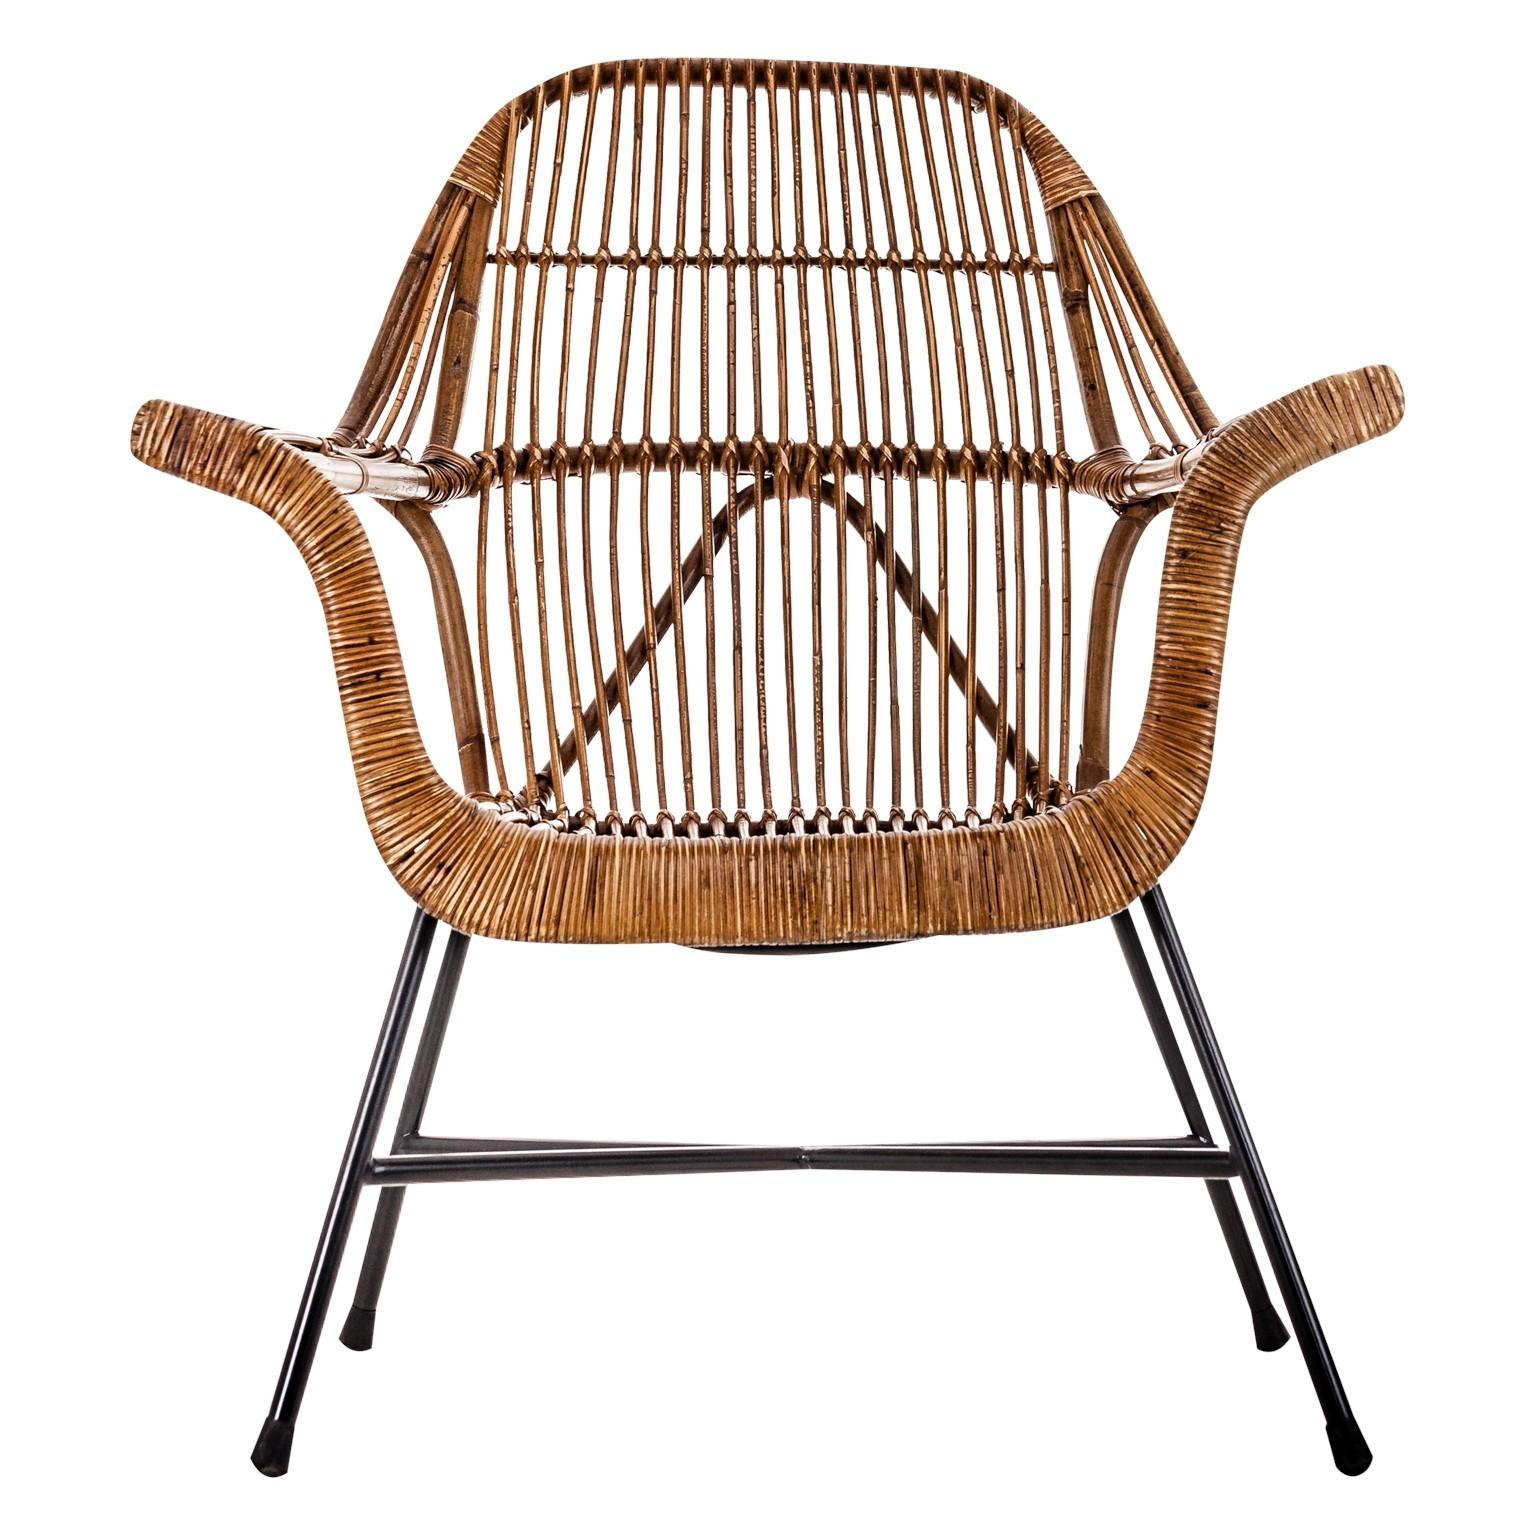 metal armchair chair covers & linens inc toyo ito suki for sale at 1stdibs rattan and midcentury design